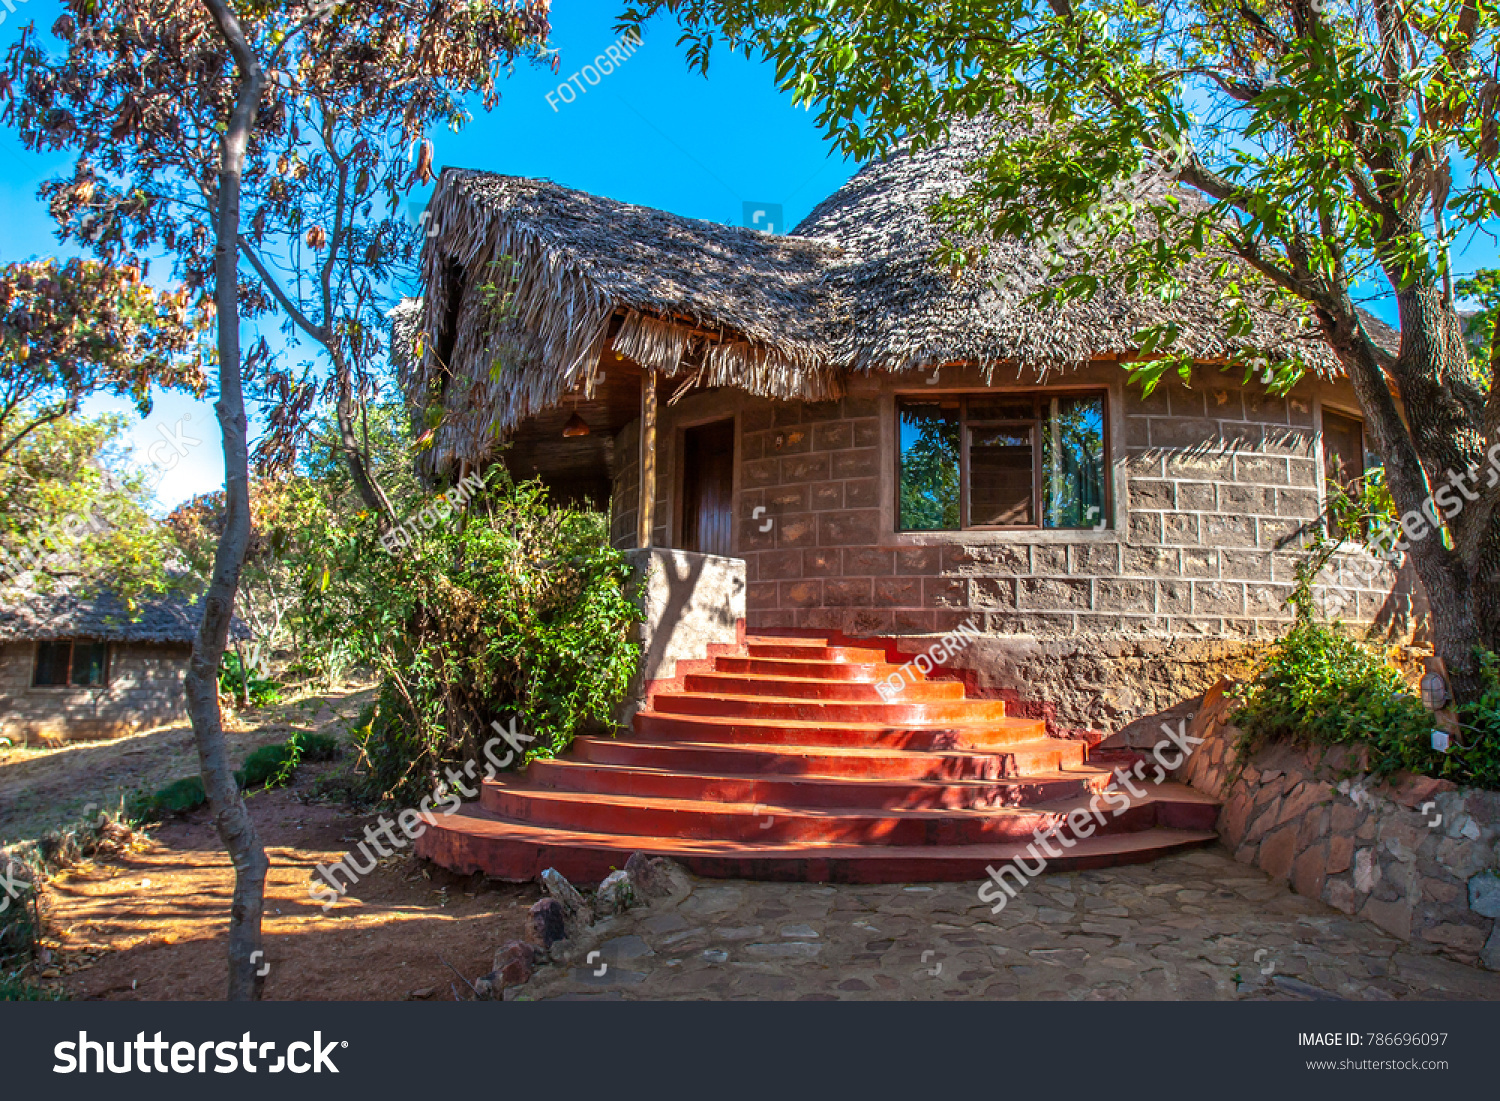 Kenya accommodation in kenya bungalow with a roof of a